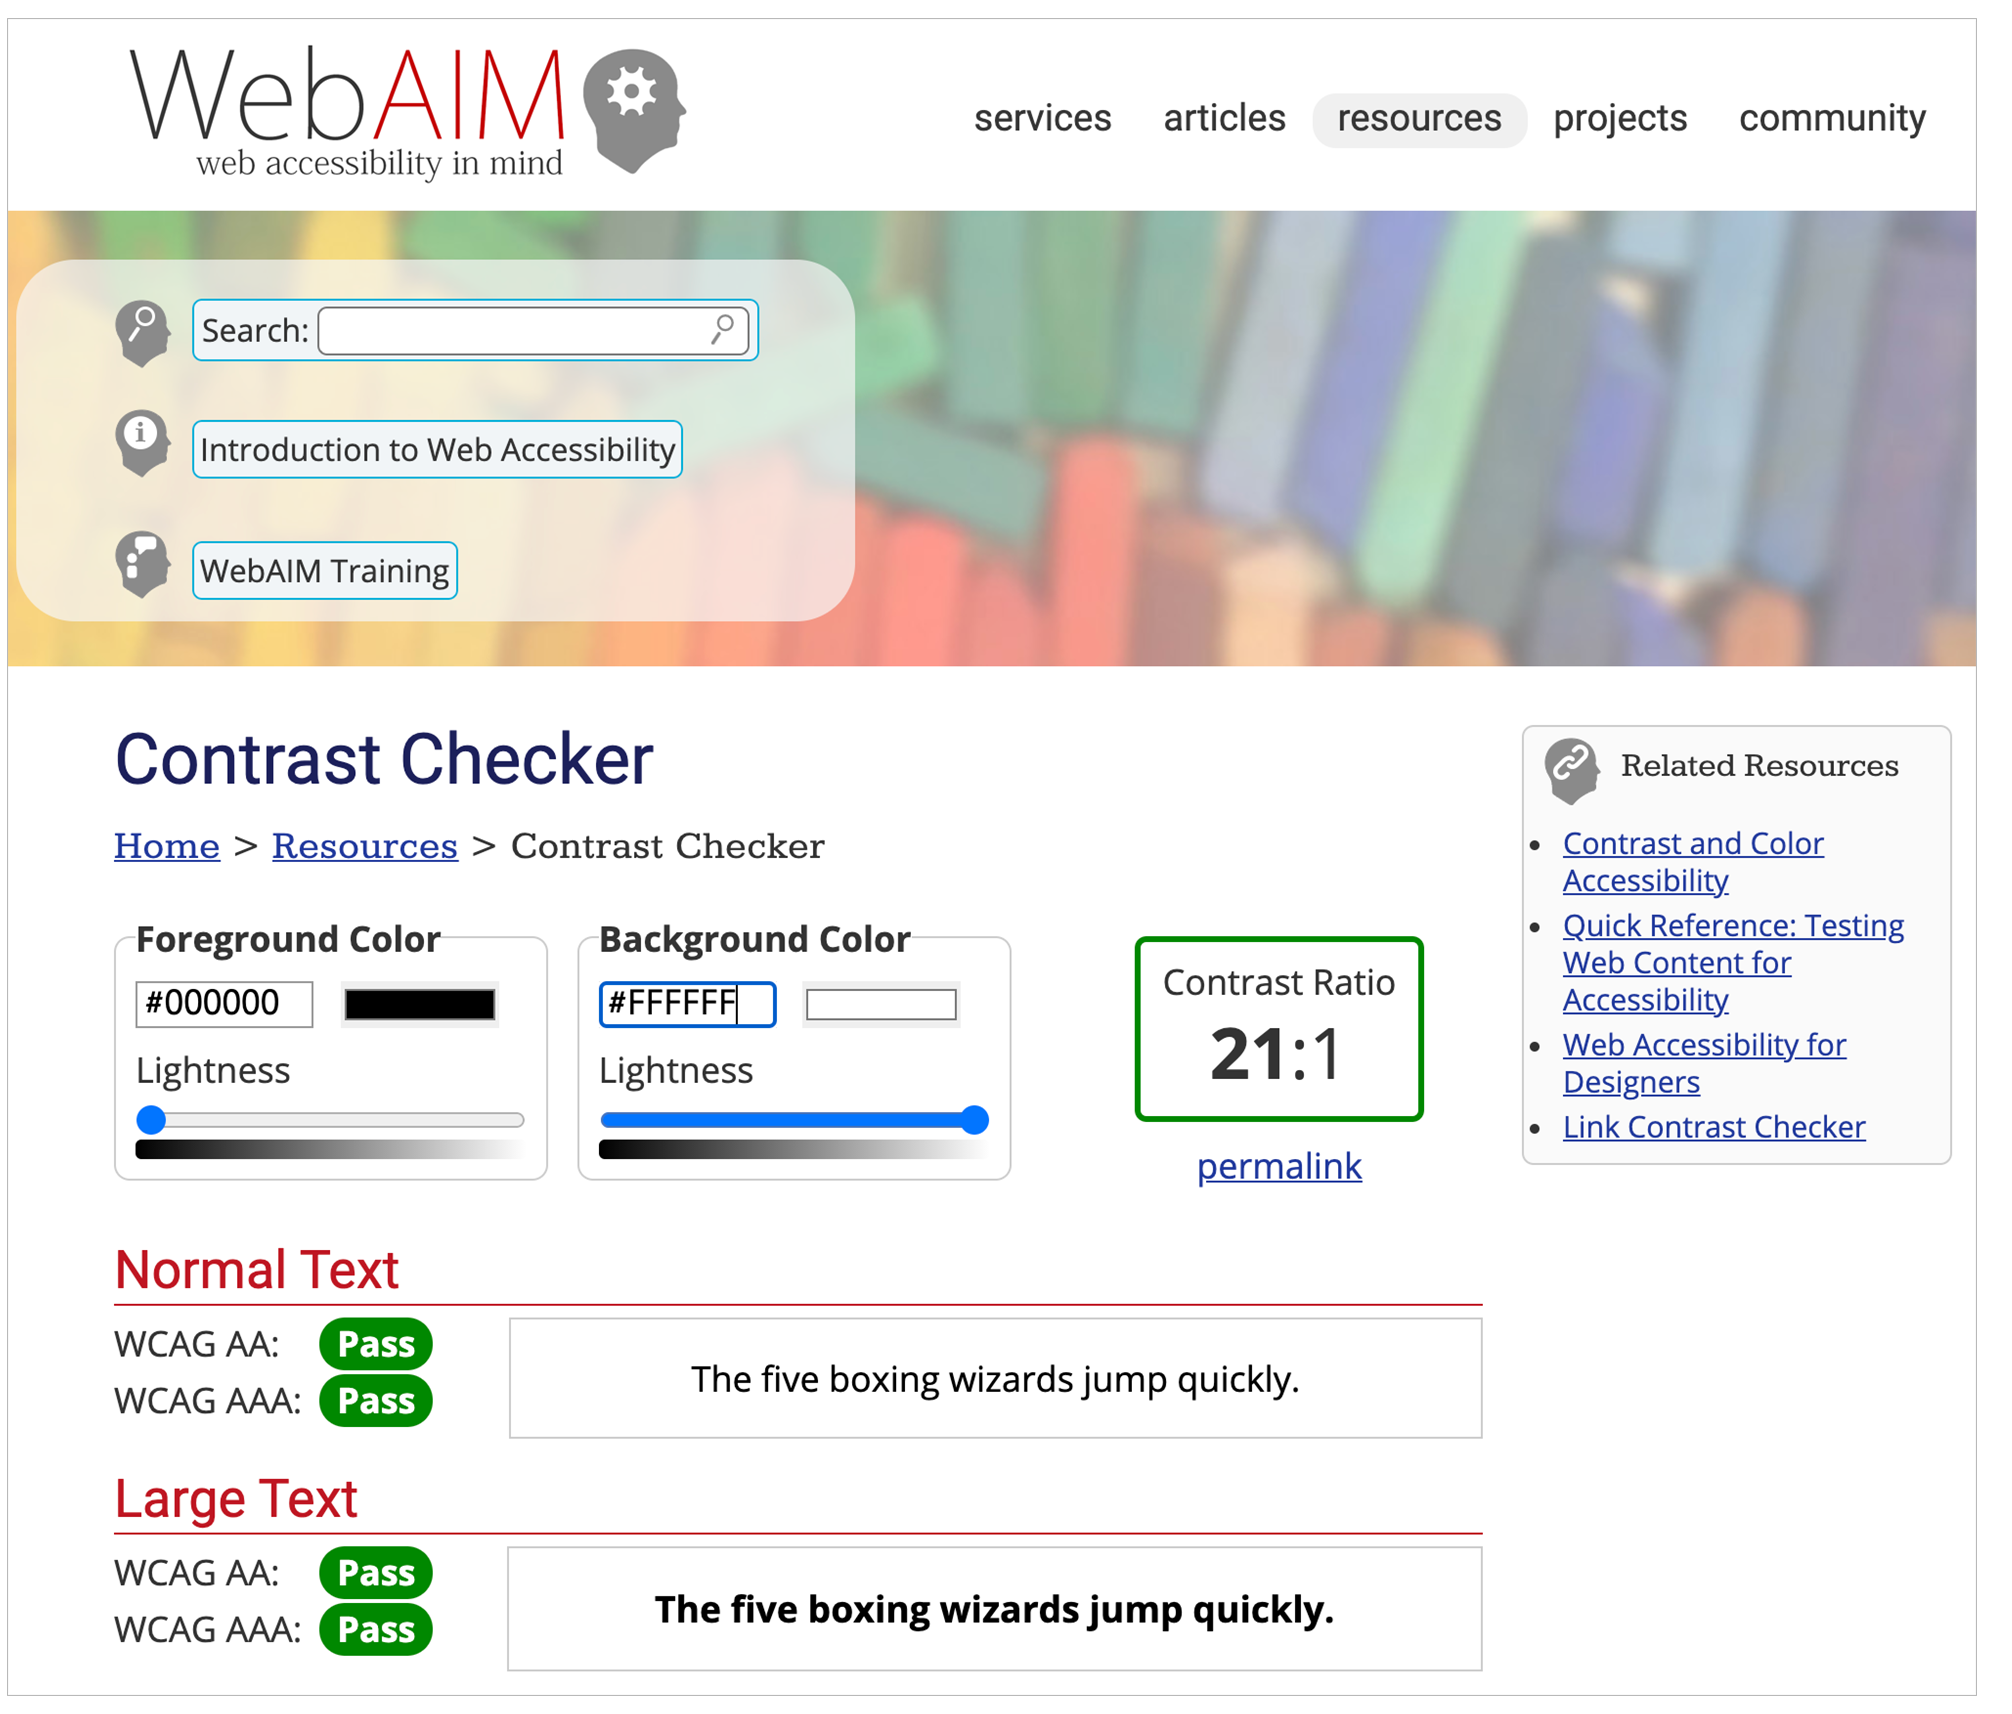 An example of a pass in WebAim Contrast Checker due to sufficient contrast ratio.